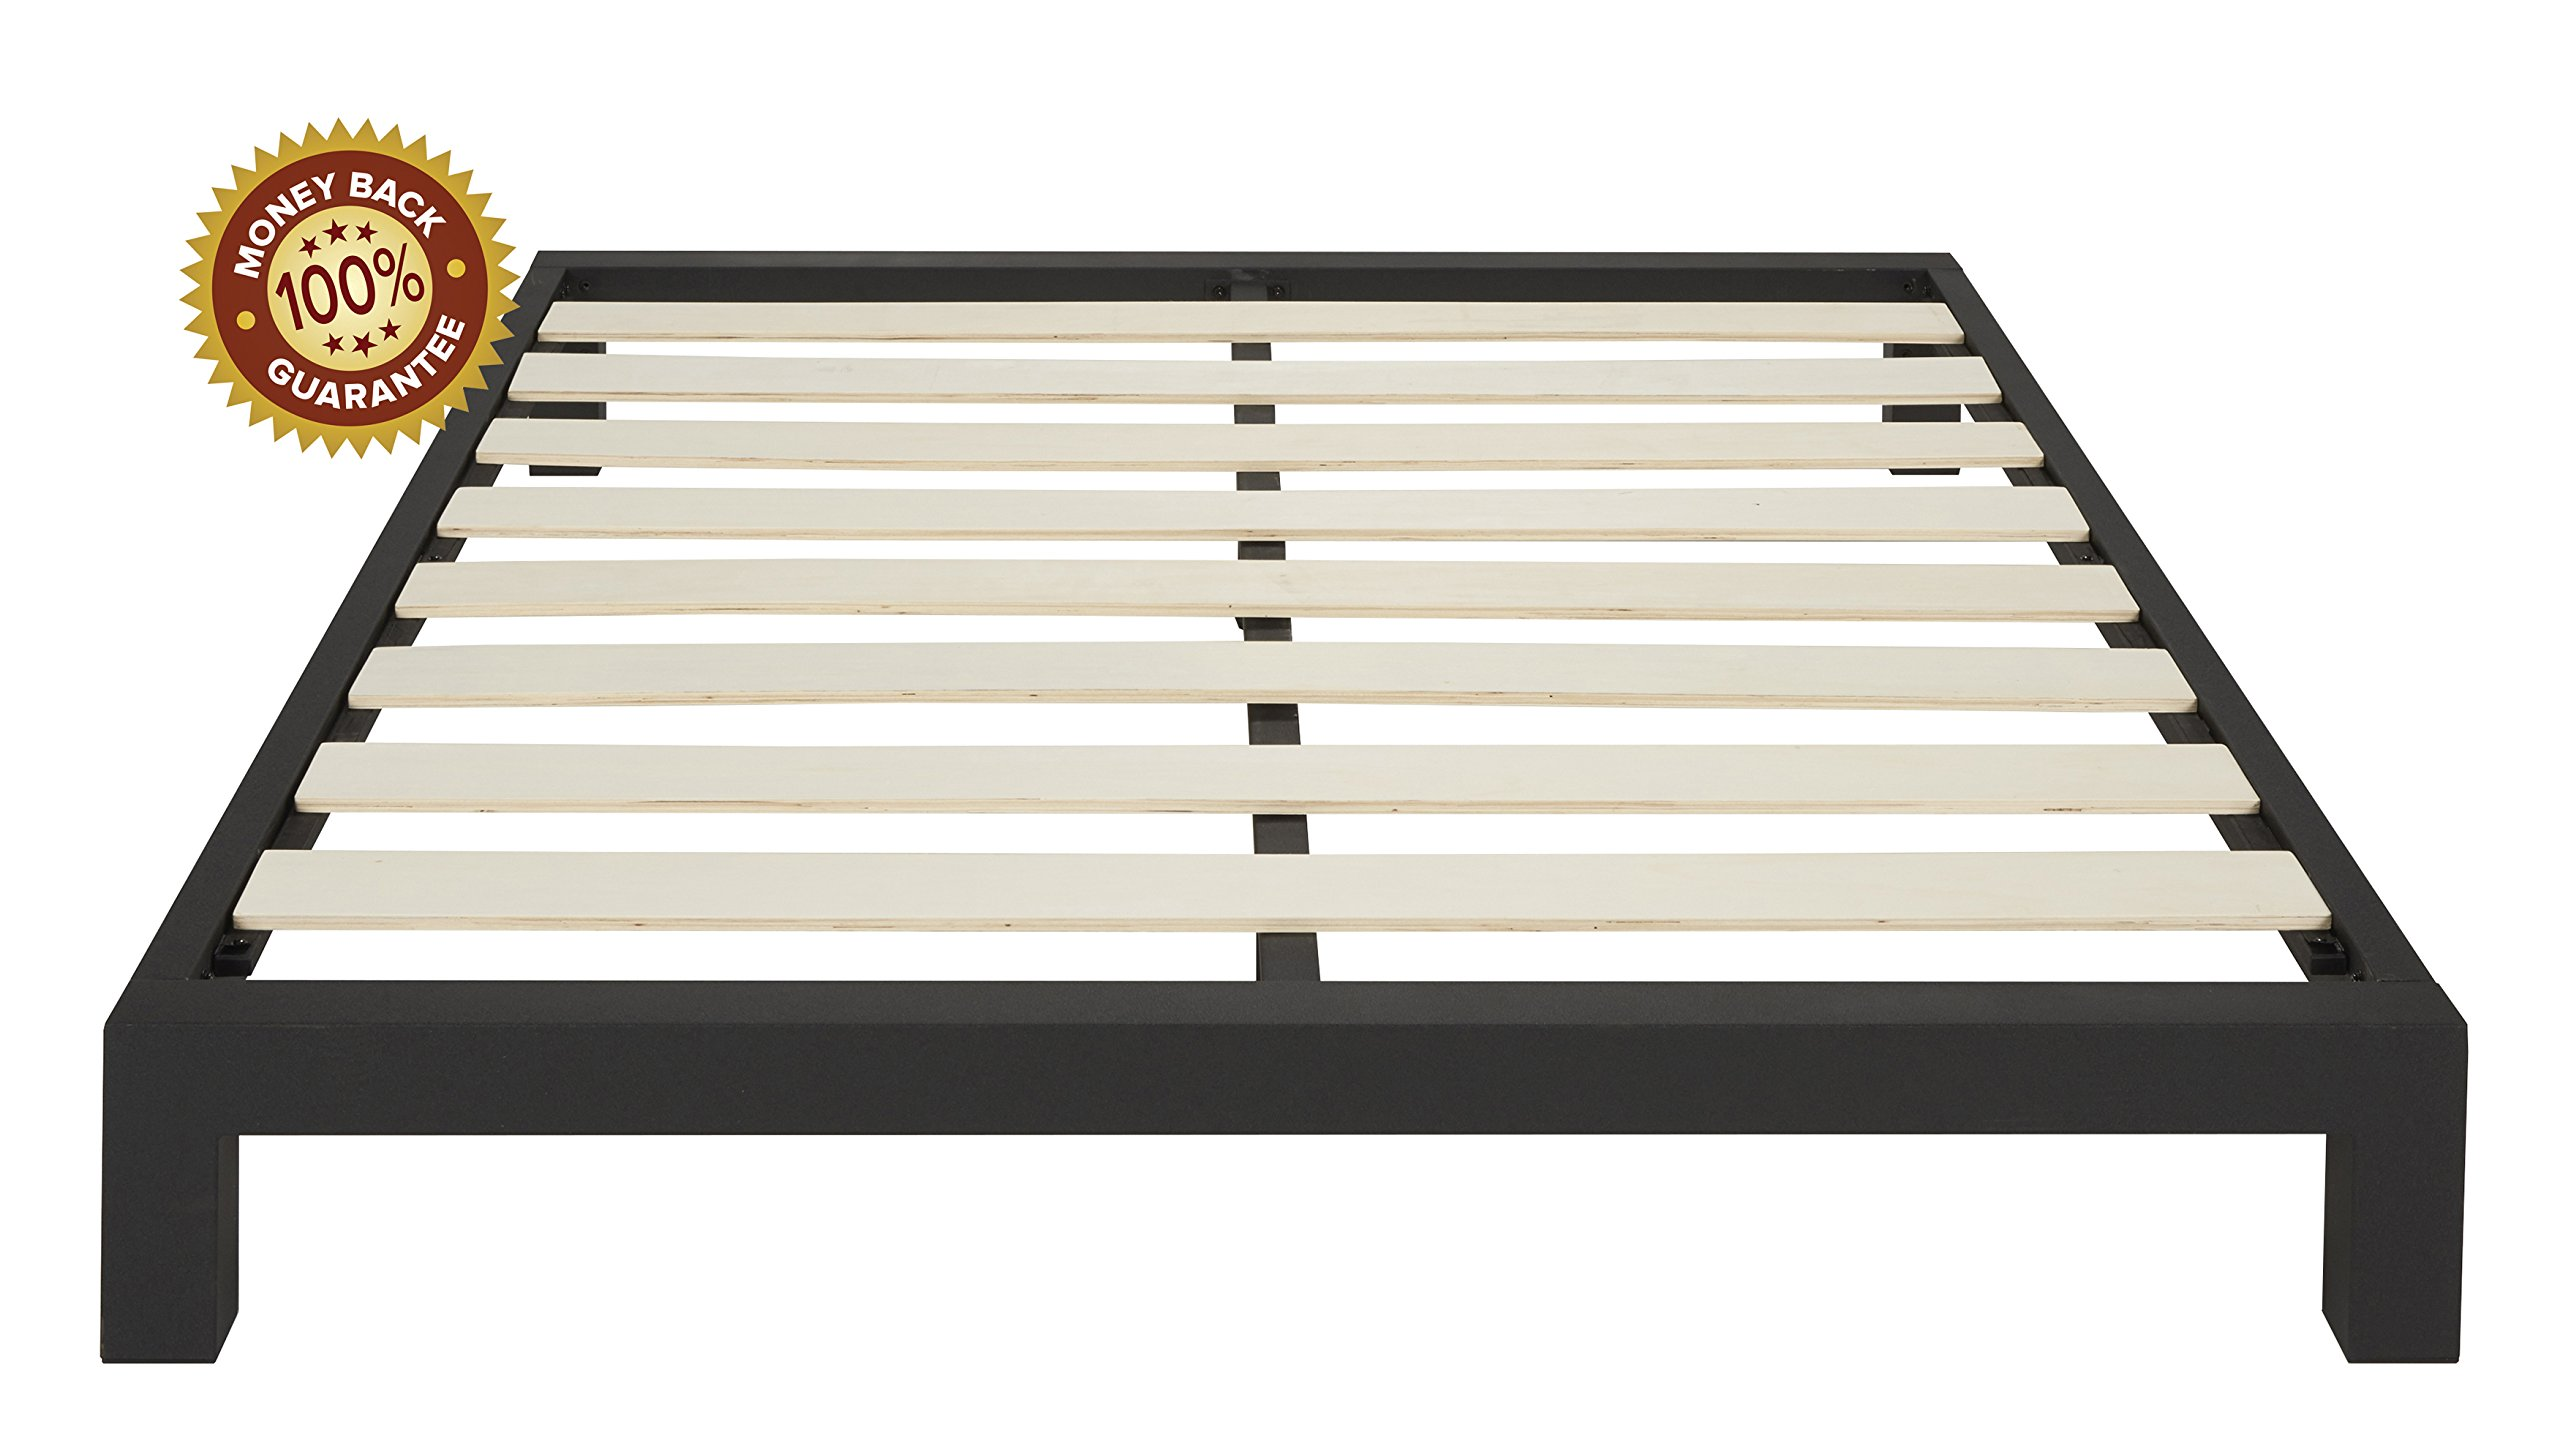 In Style Furnishings Stella Modern Metal Low Profile Thick Slats Support Platform Bed Frame - Queen Size, Black by In Style Furnishings